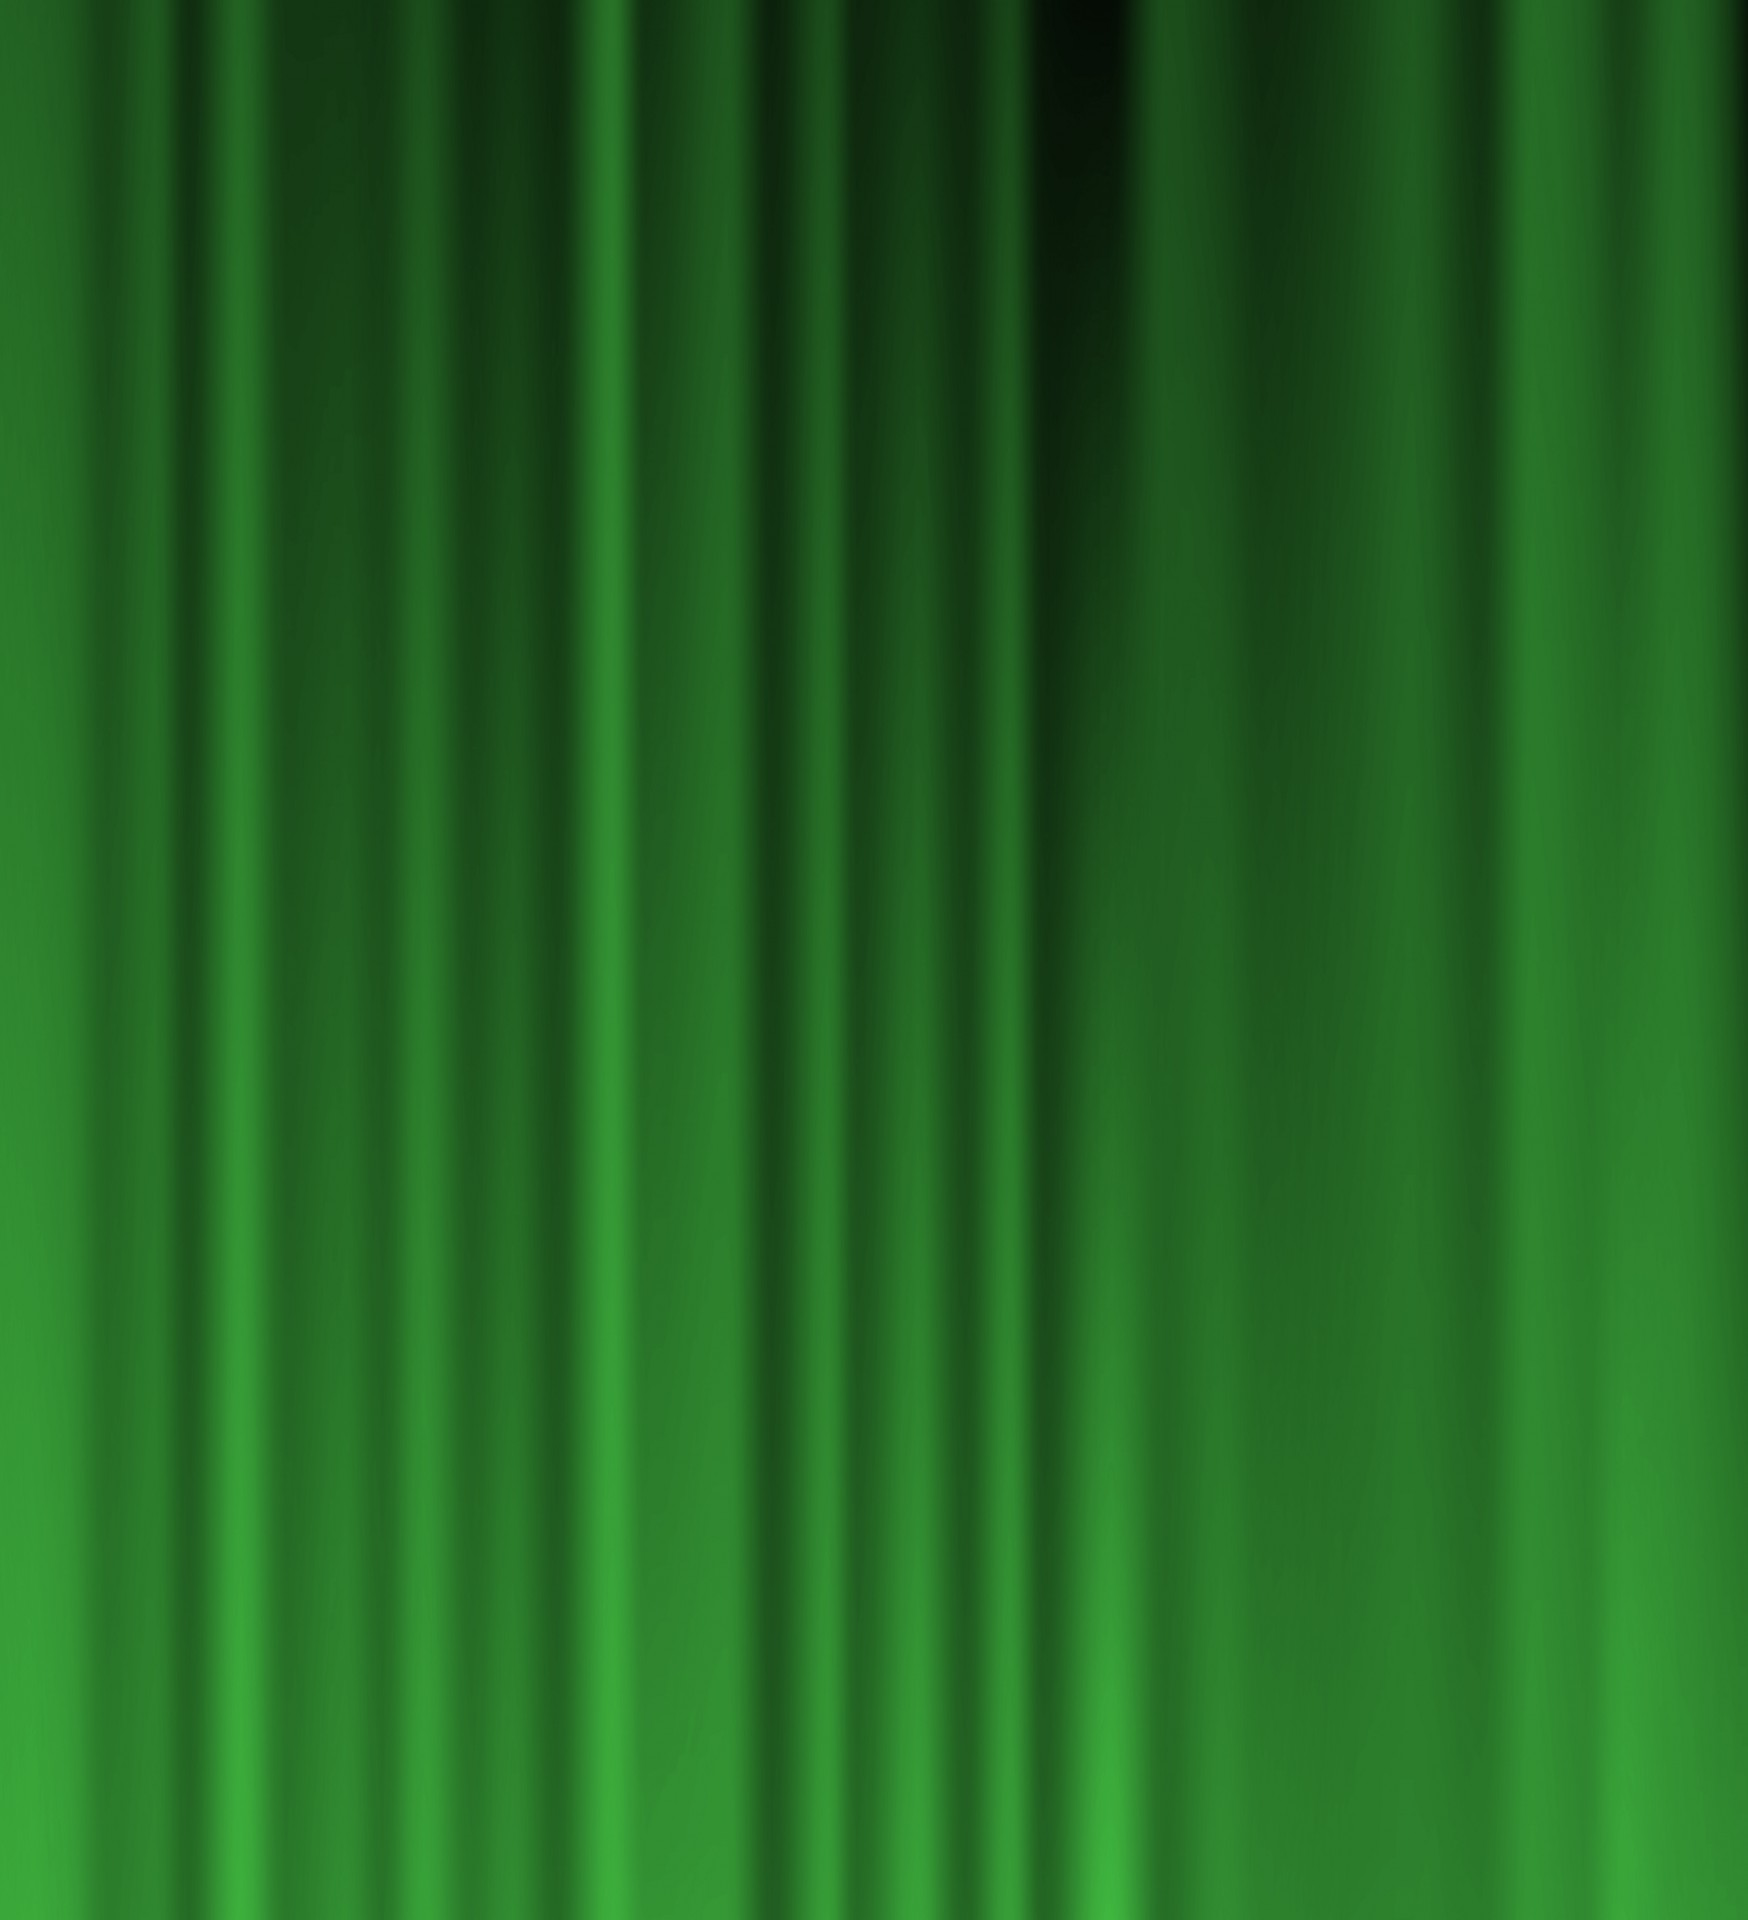 1748x1920 Green Velvet Curtains Background Free Stock Photo HD